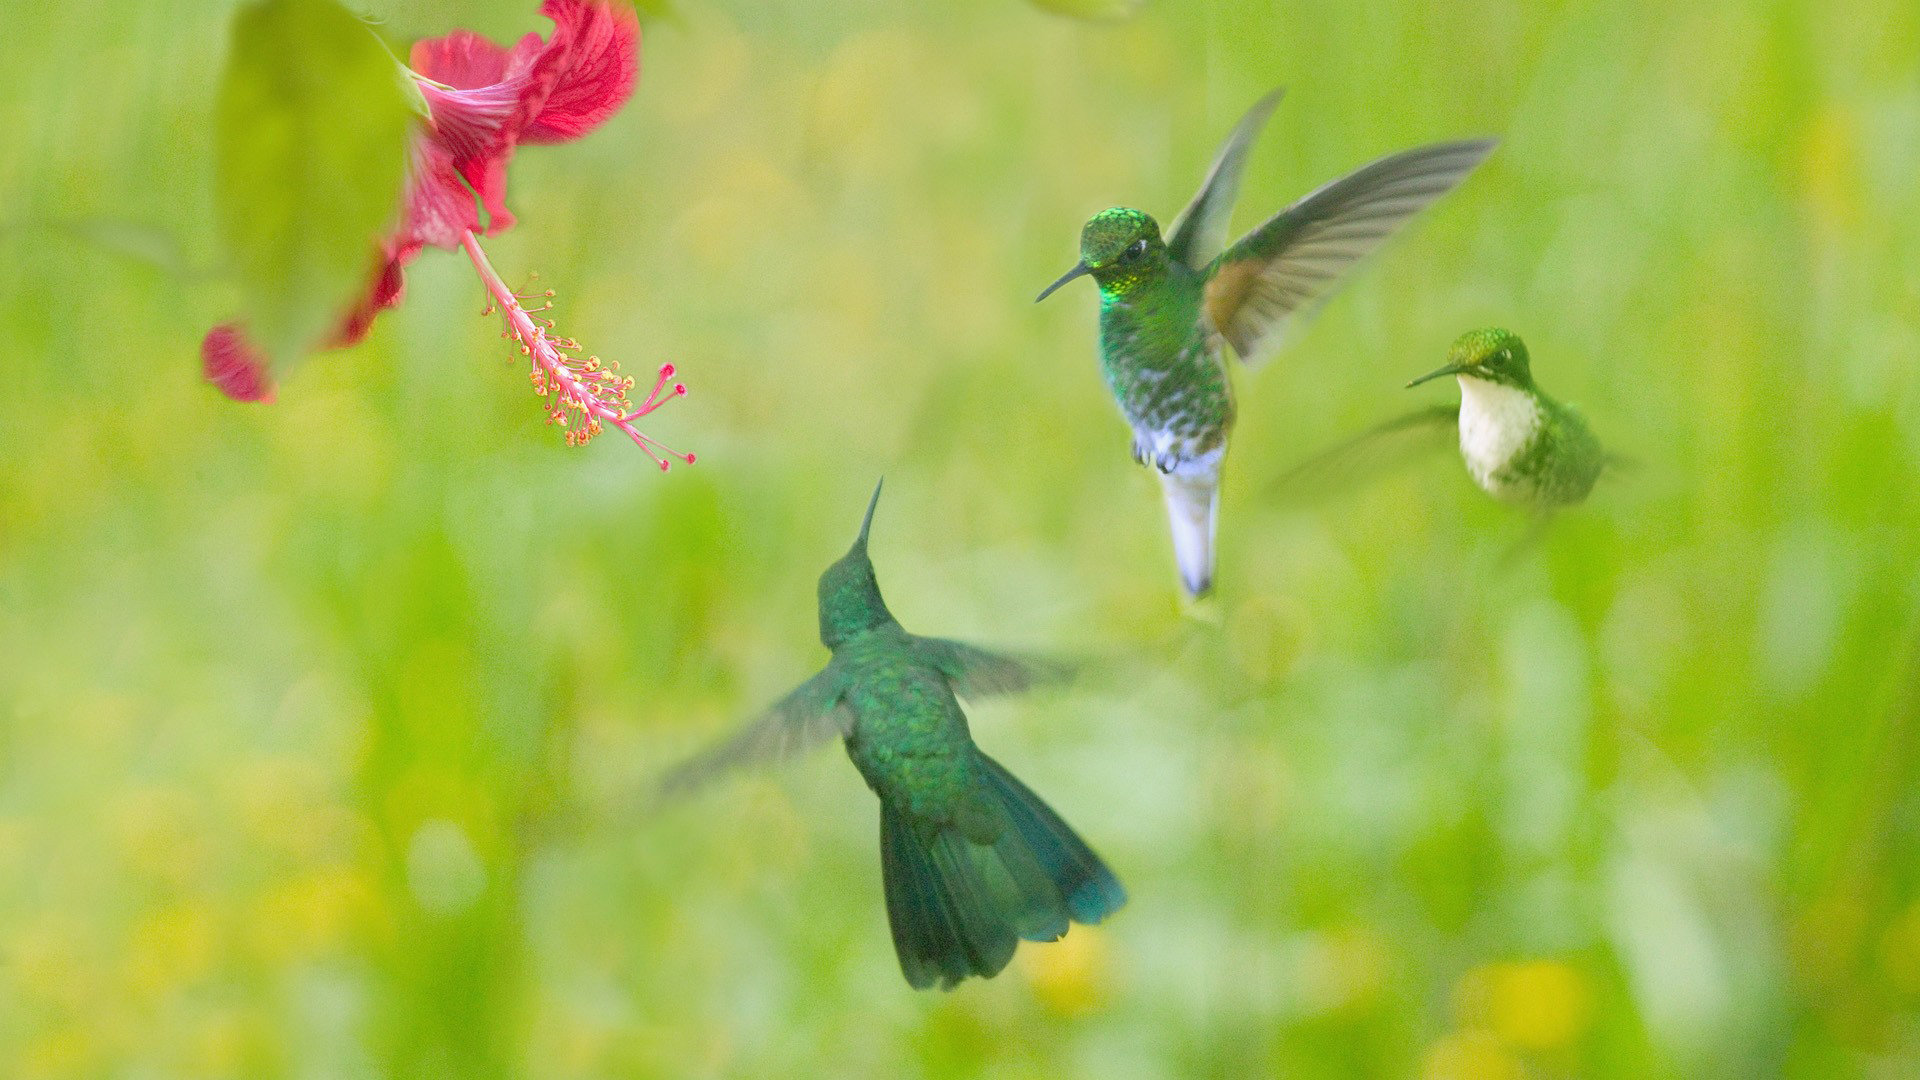 Awesome Hummingbird free wallpaper ID:215780 for hd 1920x1080 PC